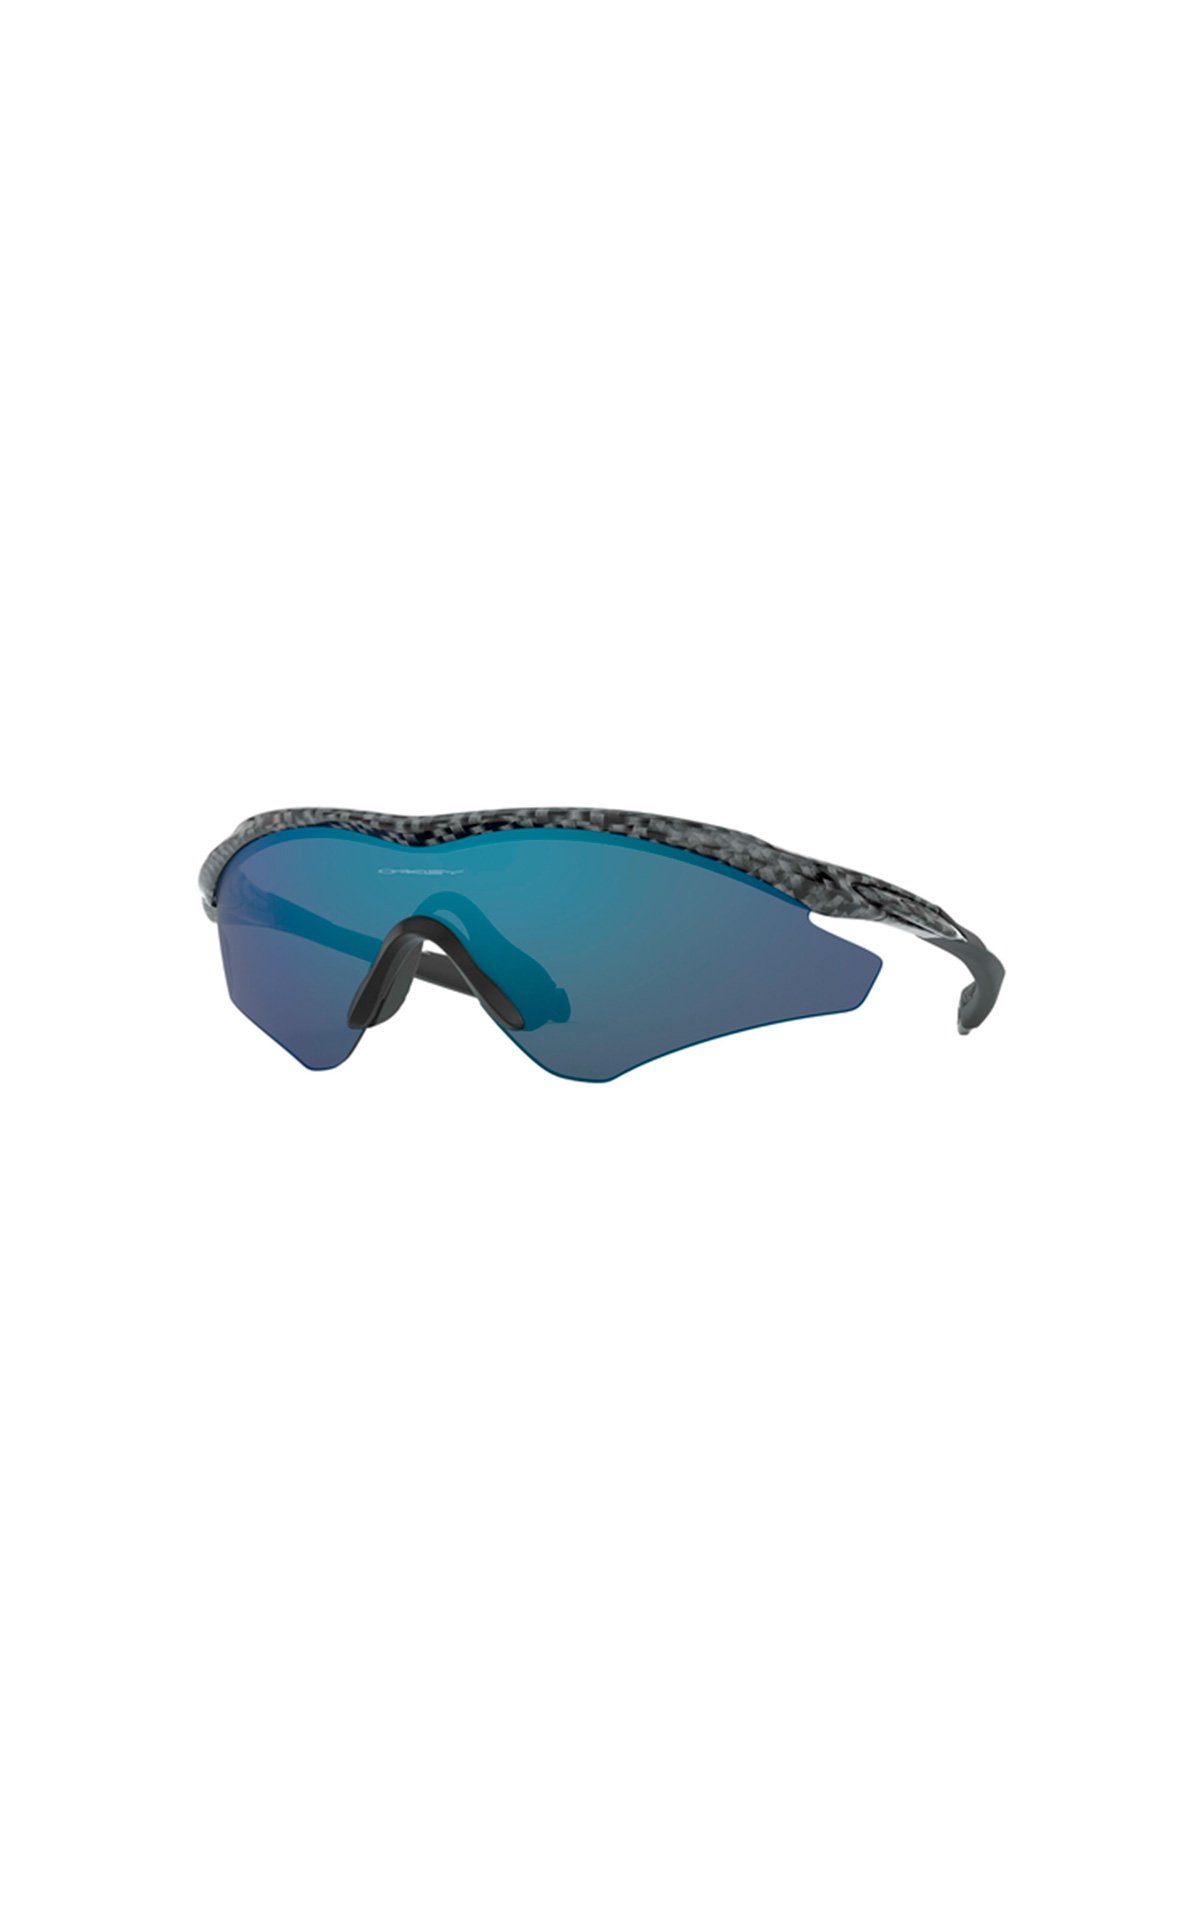 Blue Oakley sunglasses Sunglass Hut